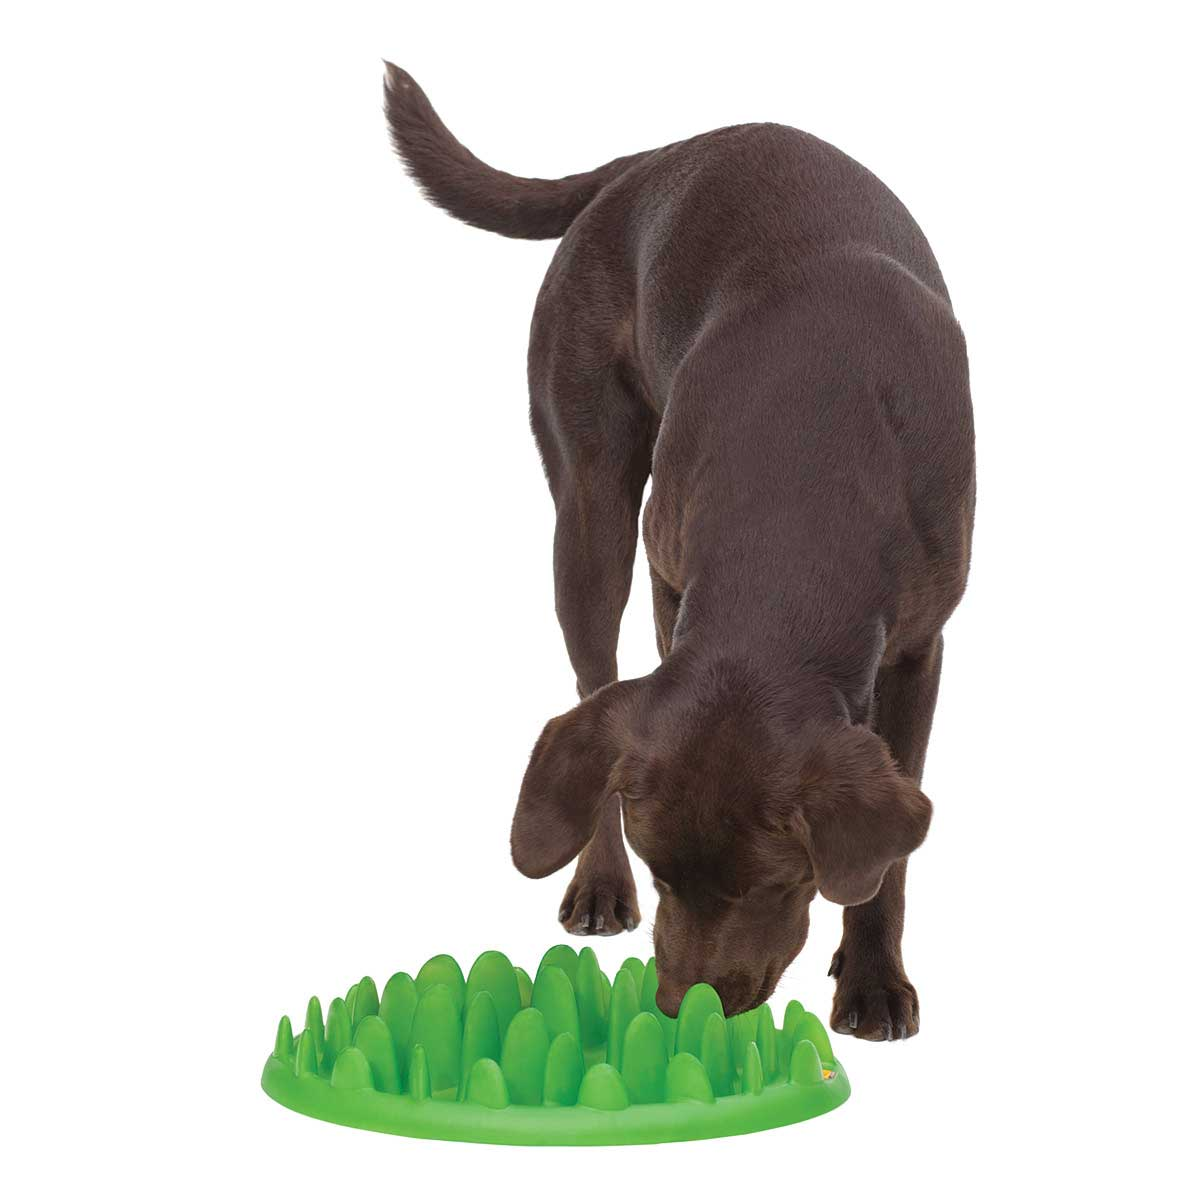 Doggy eating out of Green Interactive Feeder